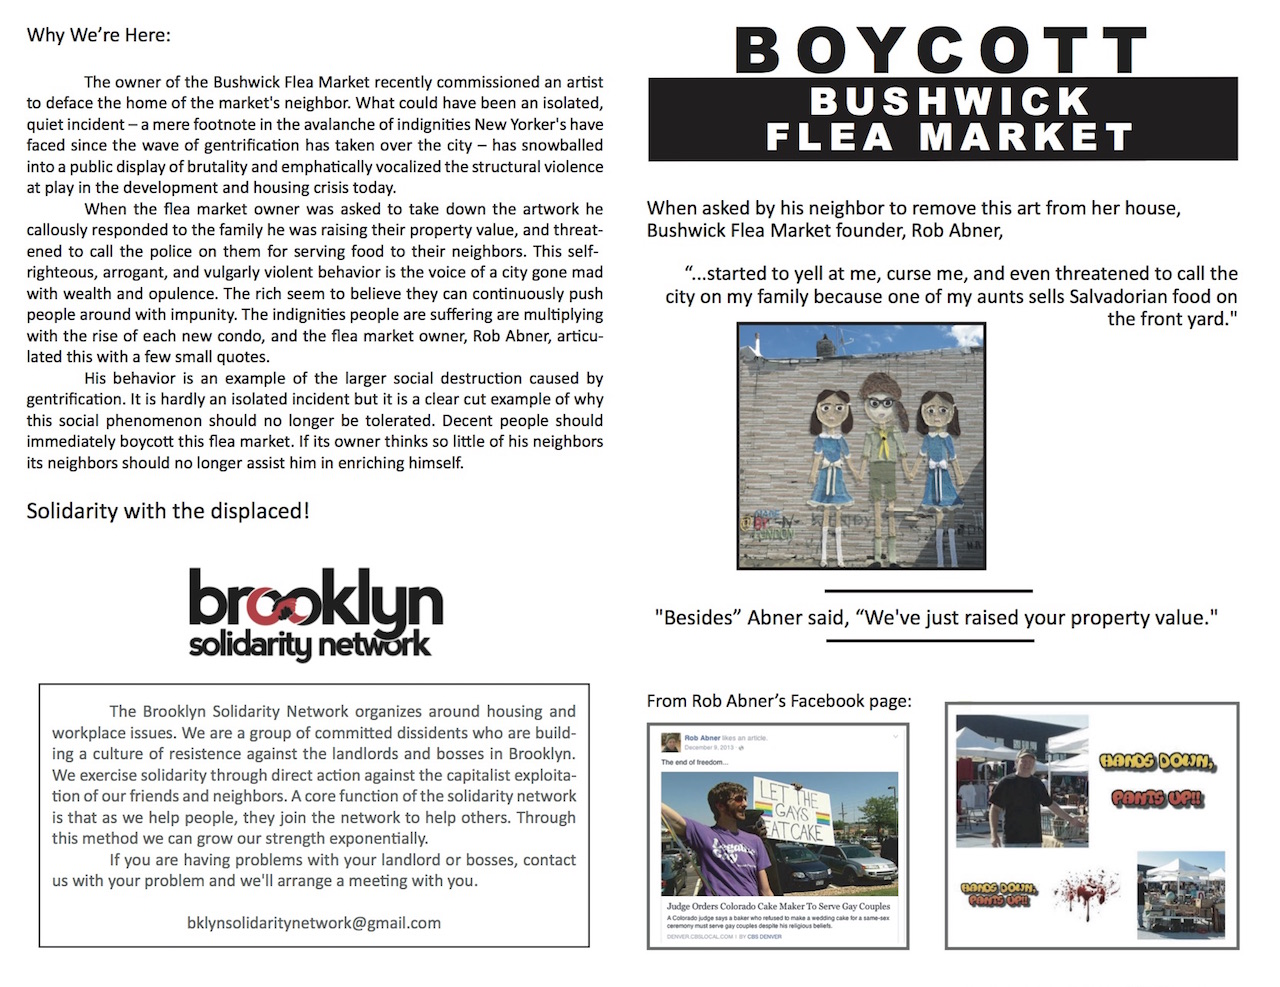 The flyer protestors handed out on Saturday calling for a boycott of the Bushwick Flea (courtesy Brooklyn Solidarity Network) (click to enlarge)